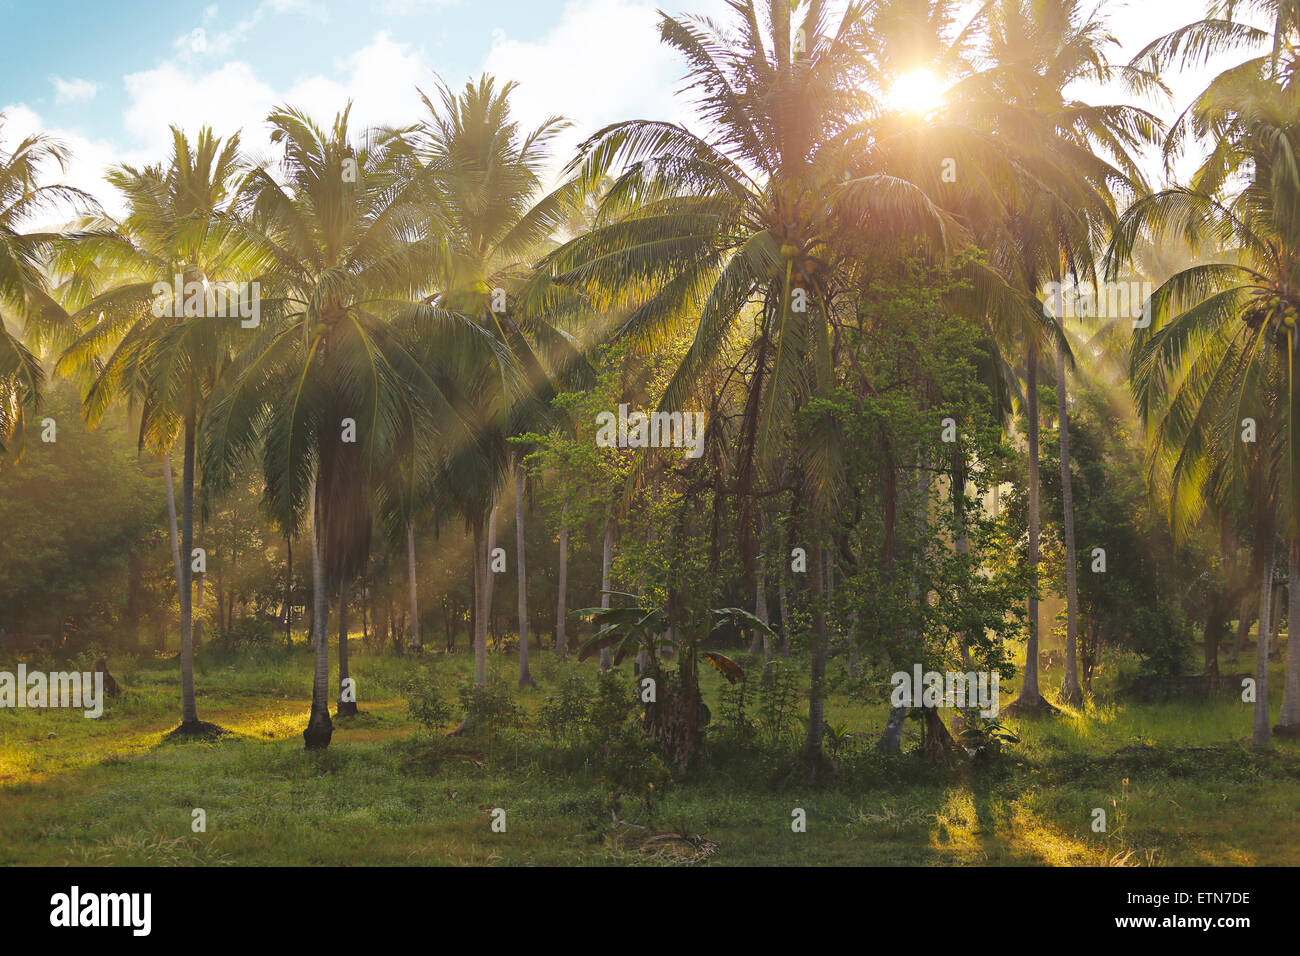 Sunlight beaming through palm trees in a tropical garden, Thailand - Stock Image